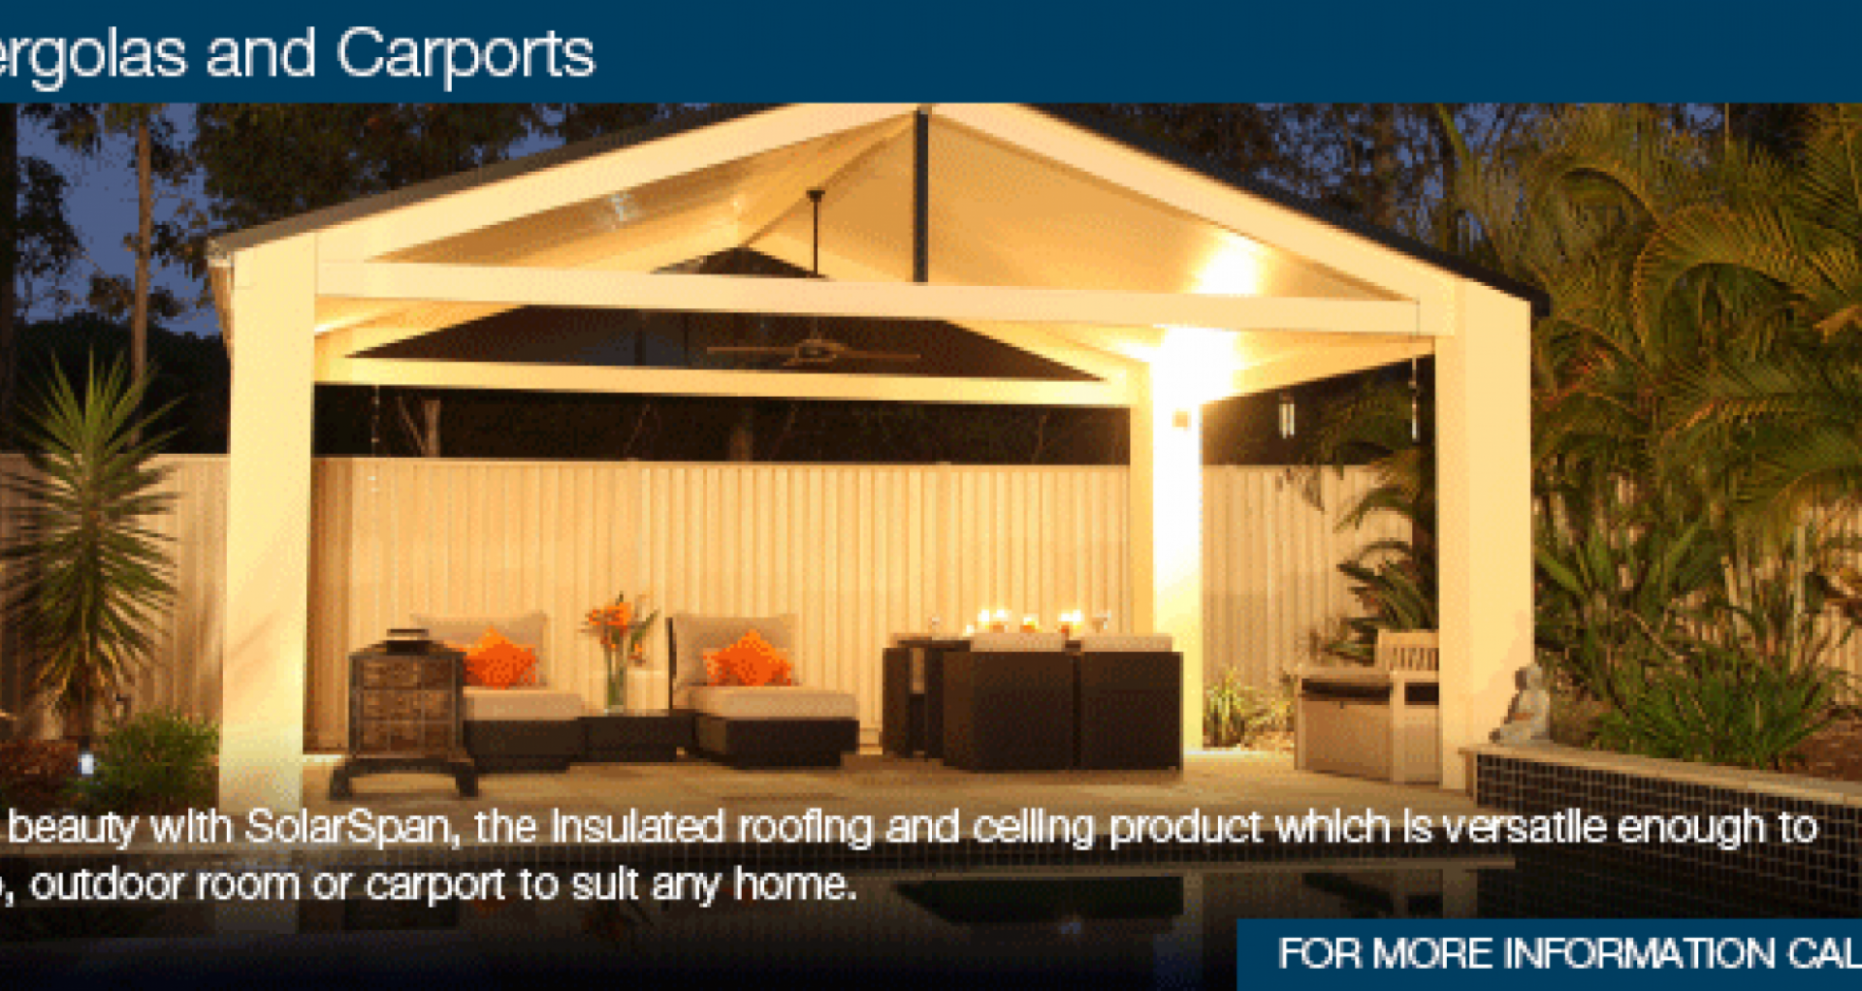 Patios & Carports | Bondor | Insulated Panels Australia Carports With Pitched Roofs